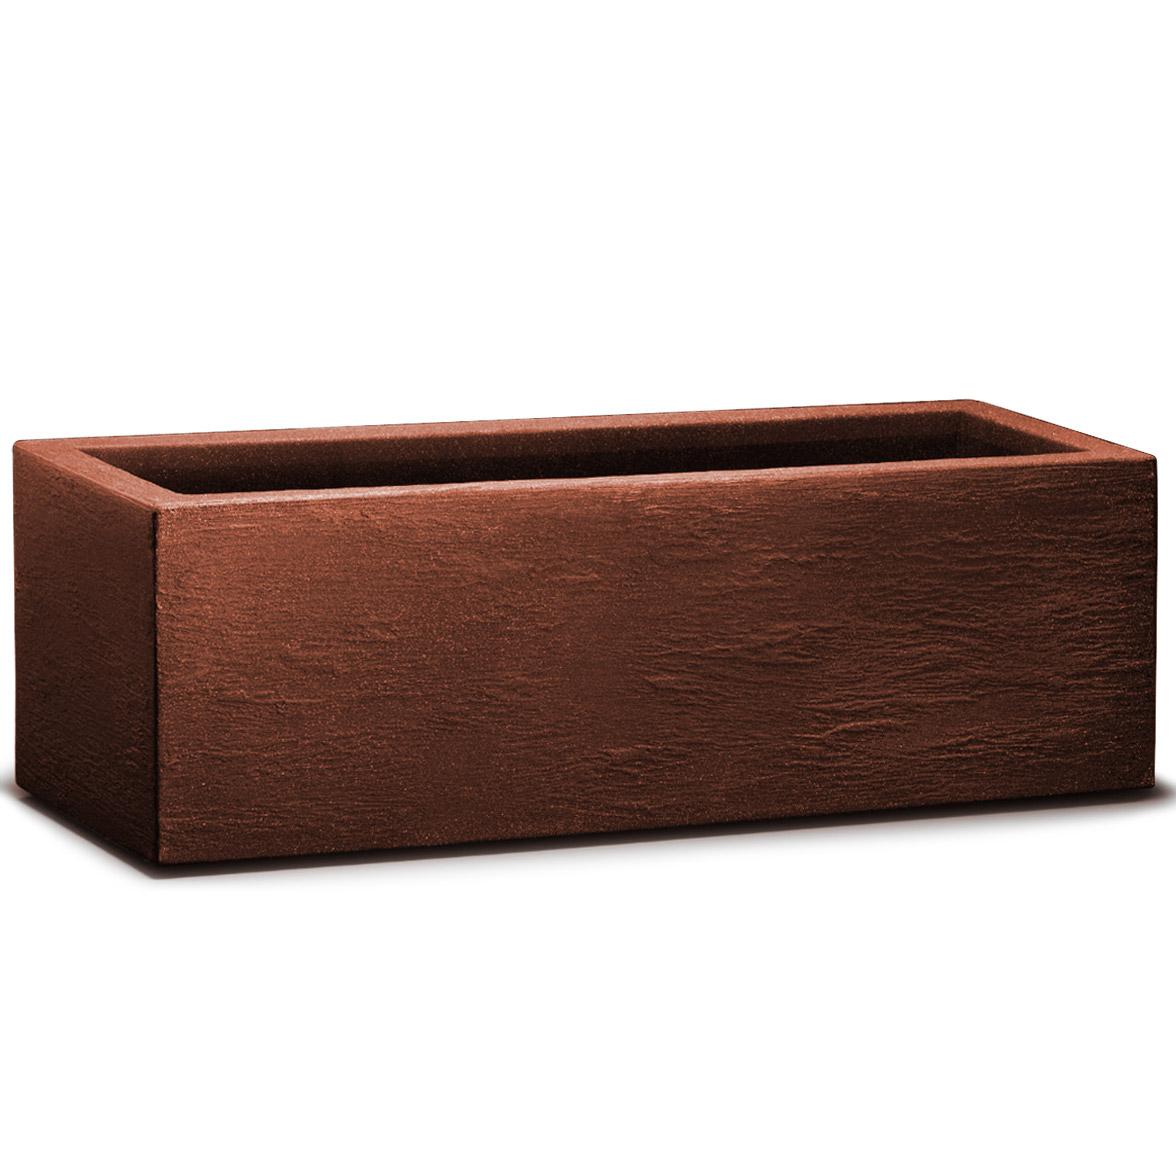 planter plant pot box rectangular window trough 80x30x27cm. Black Bedroom Furniture Sets. Home Design Ideas